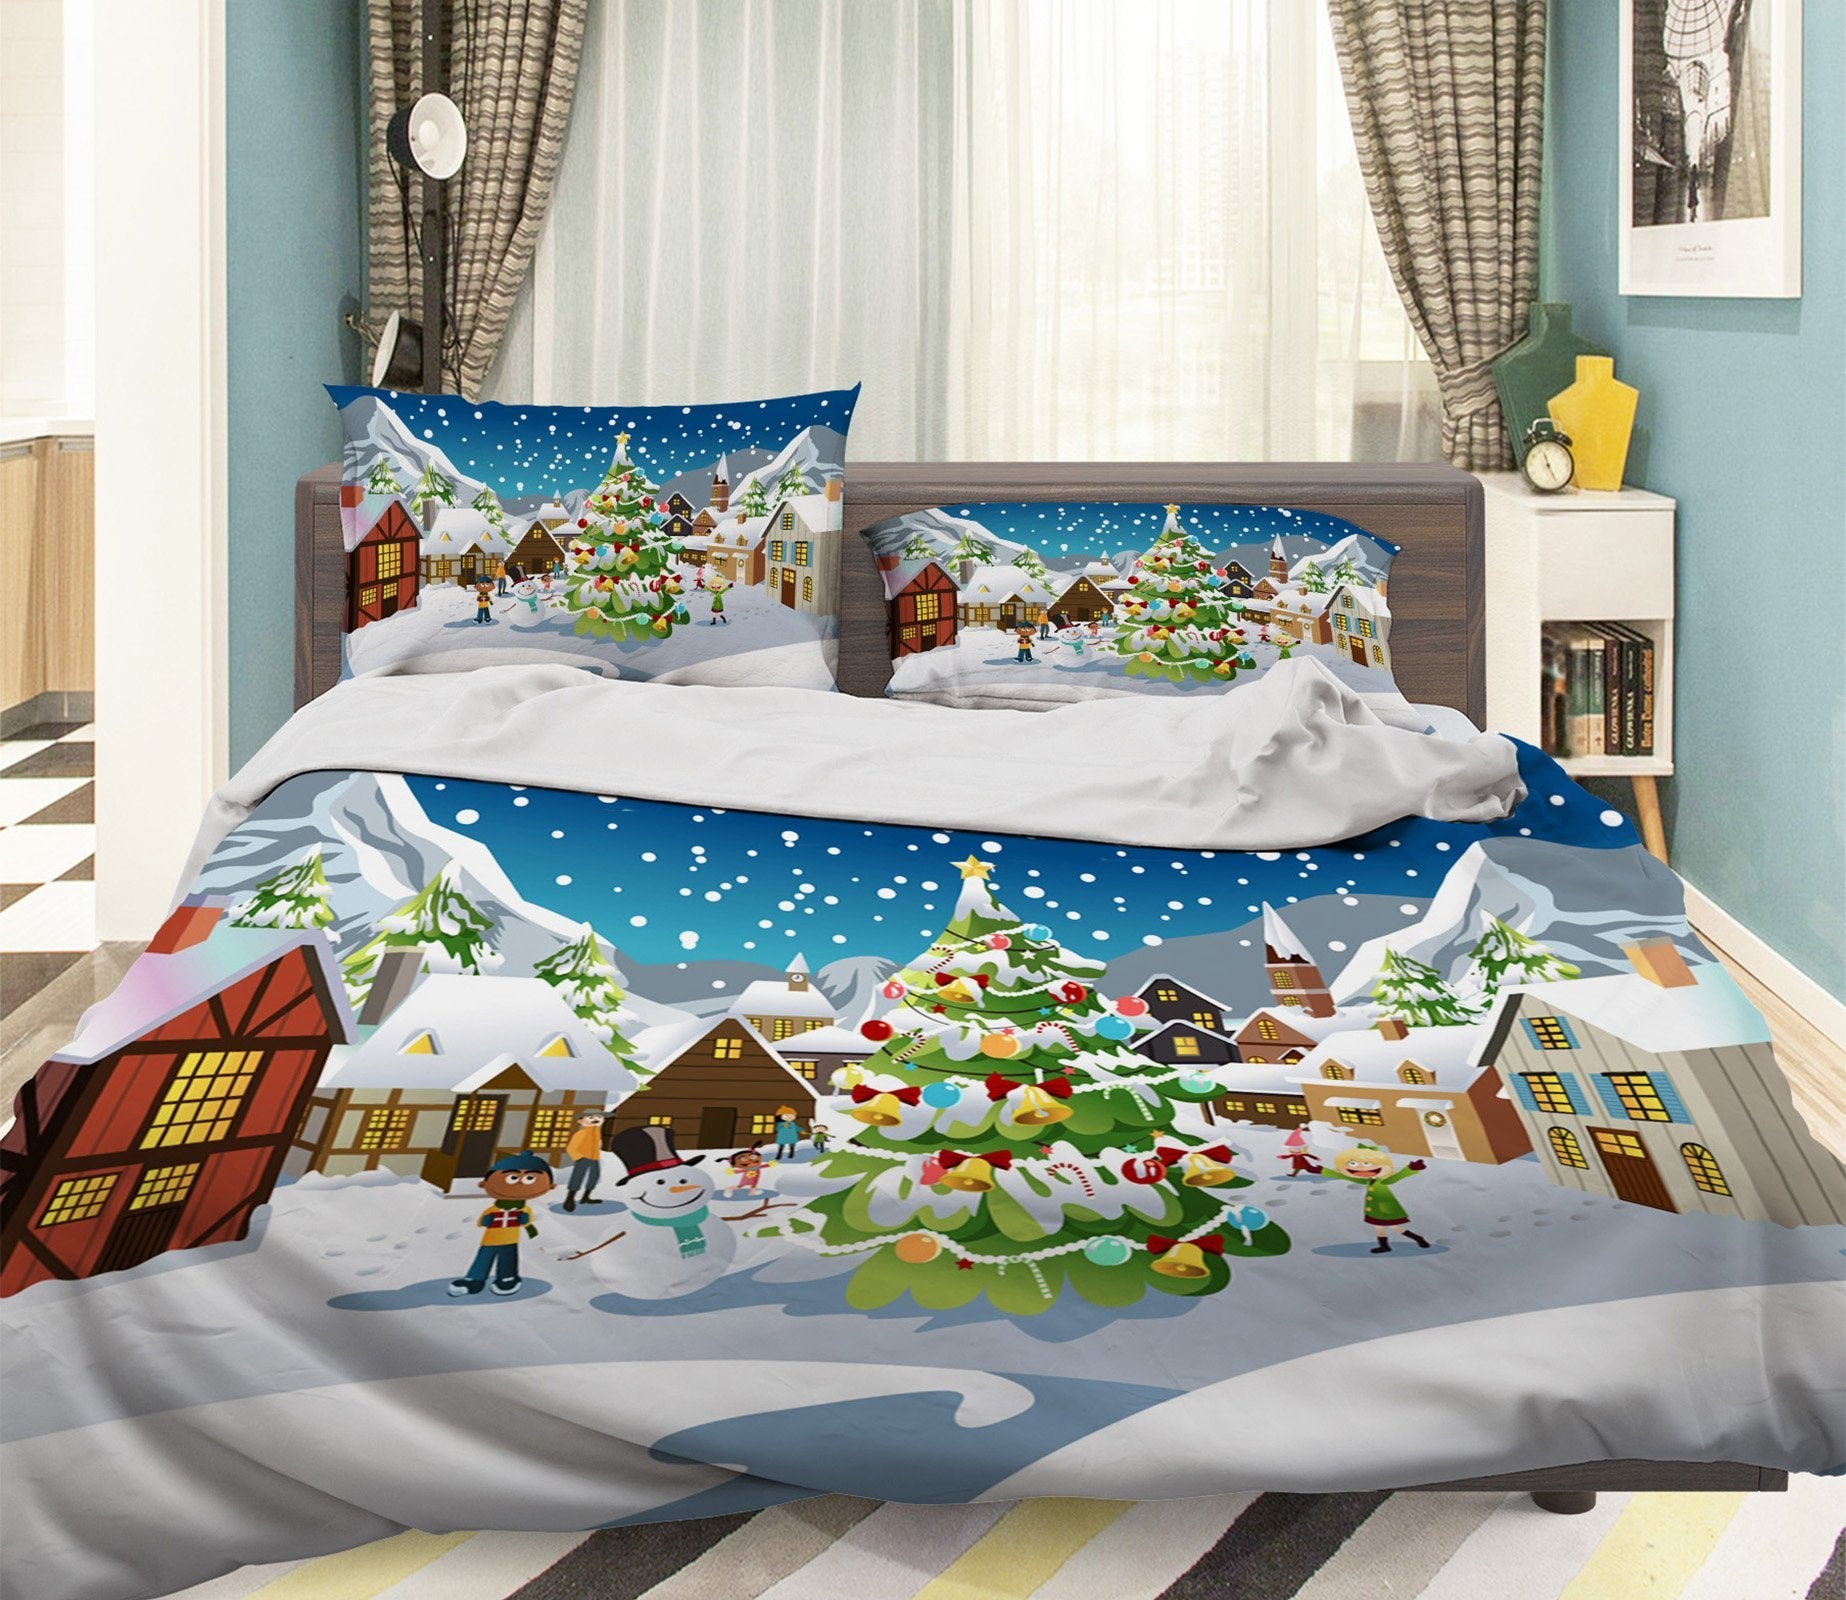 3D Christmas Rural Snow 26 Bed Pillowcases Quilt Quiet Covers AJ Creativity Home